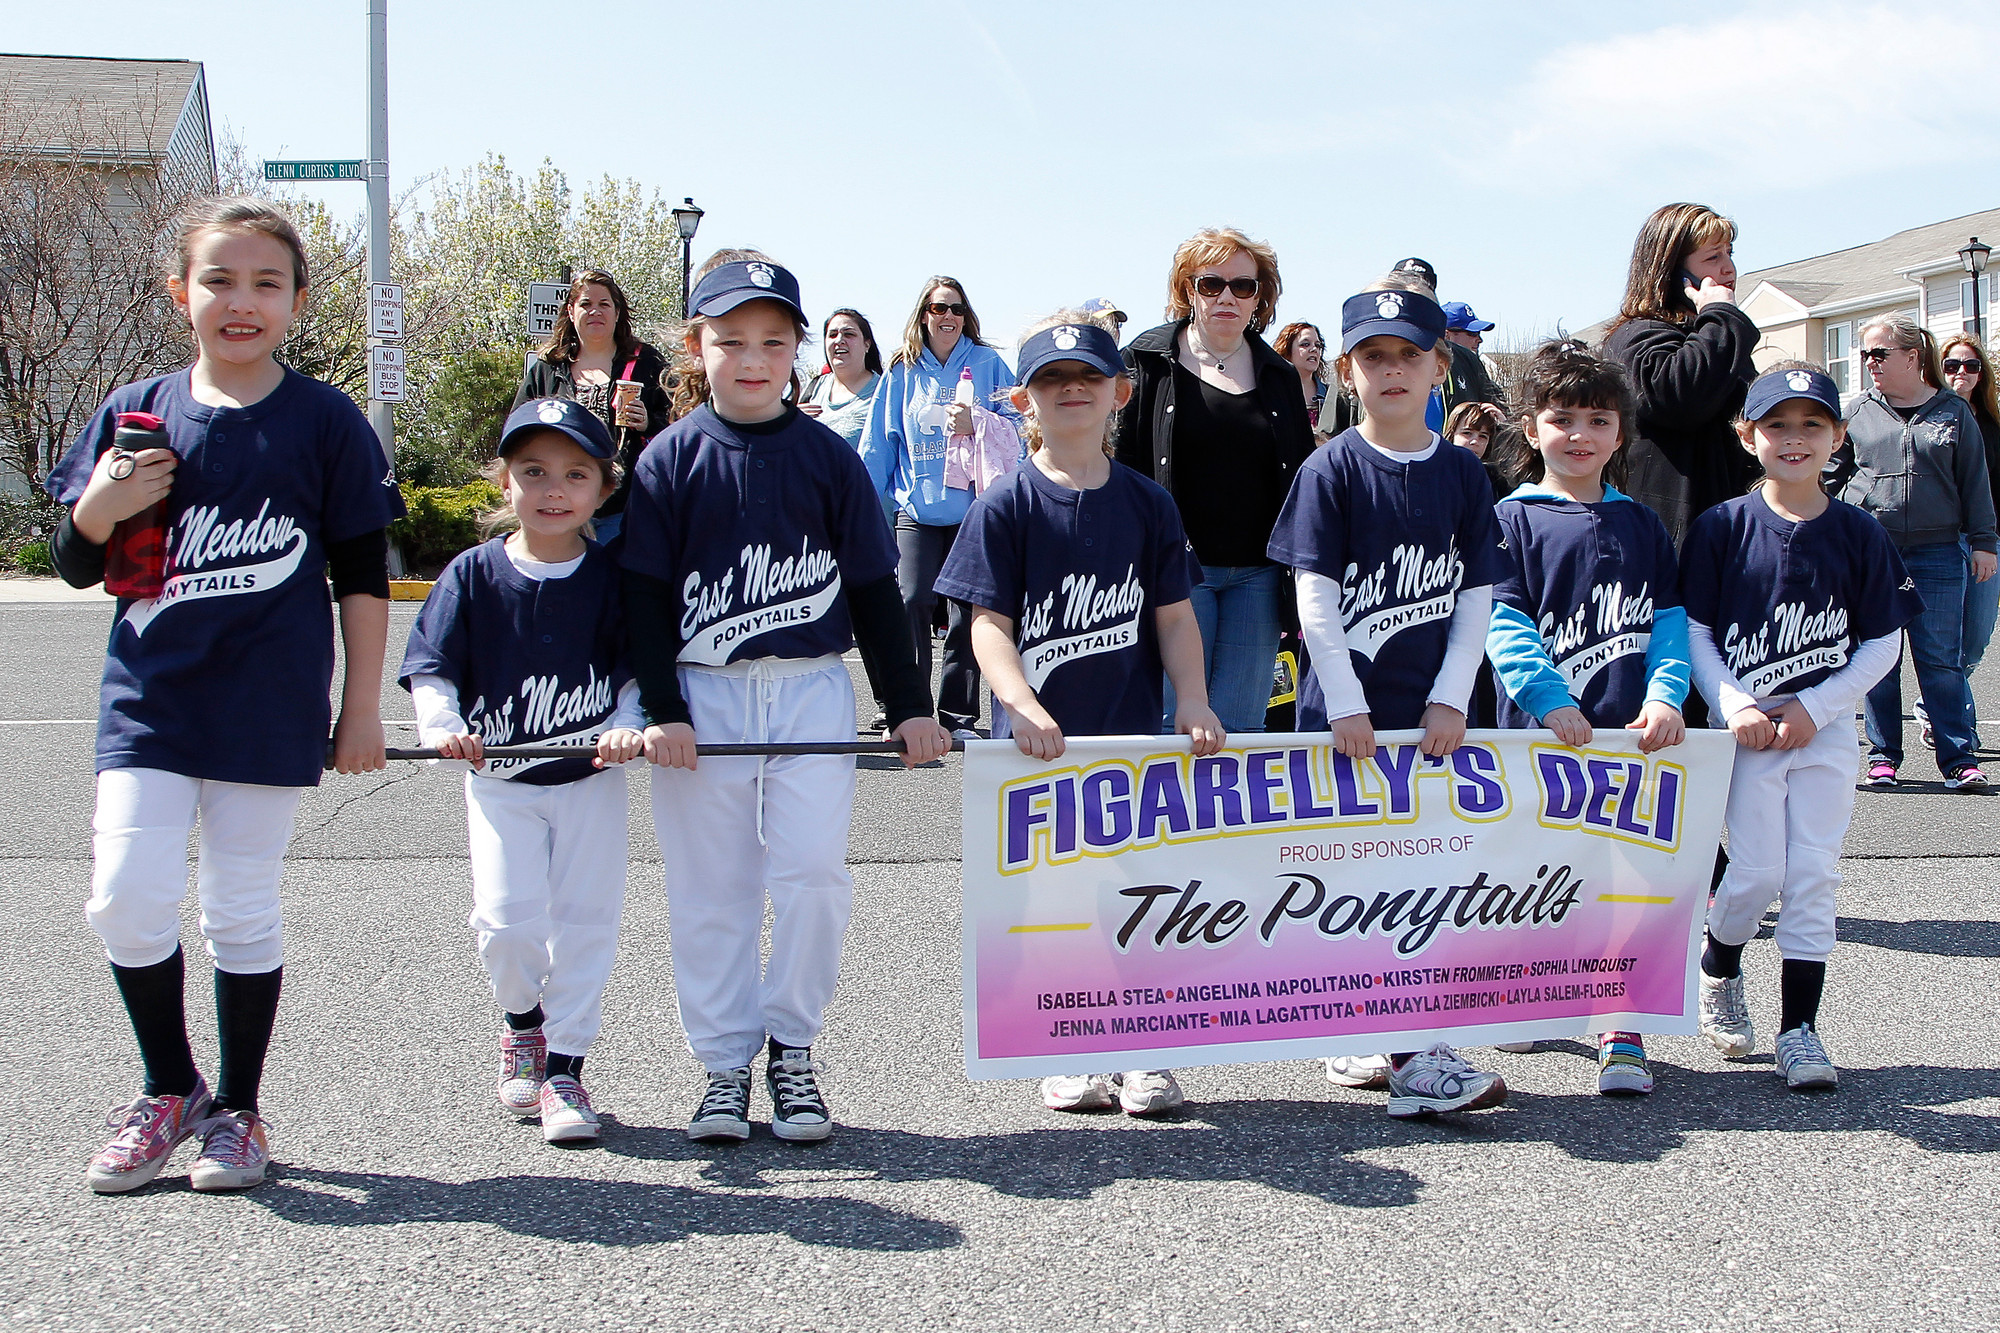 The East Meadow Ponytails team, sponsored by Figarelly's Deli, was one of many teams who gathered together and marched during the East Meadow Baseball Softball Association's annual parade.